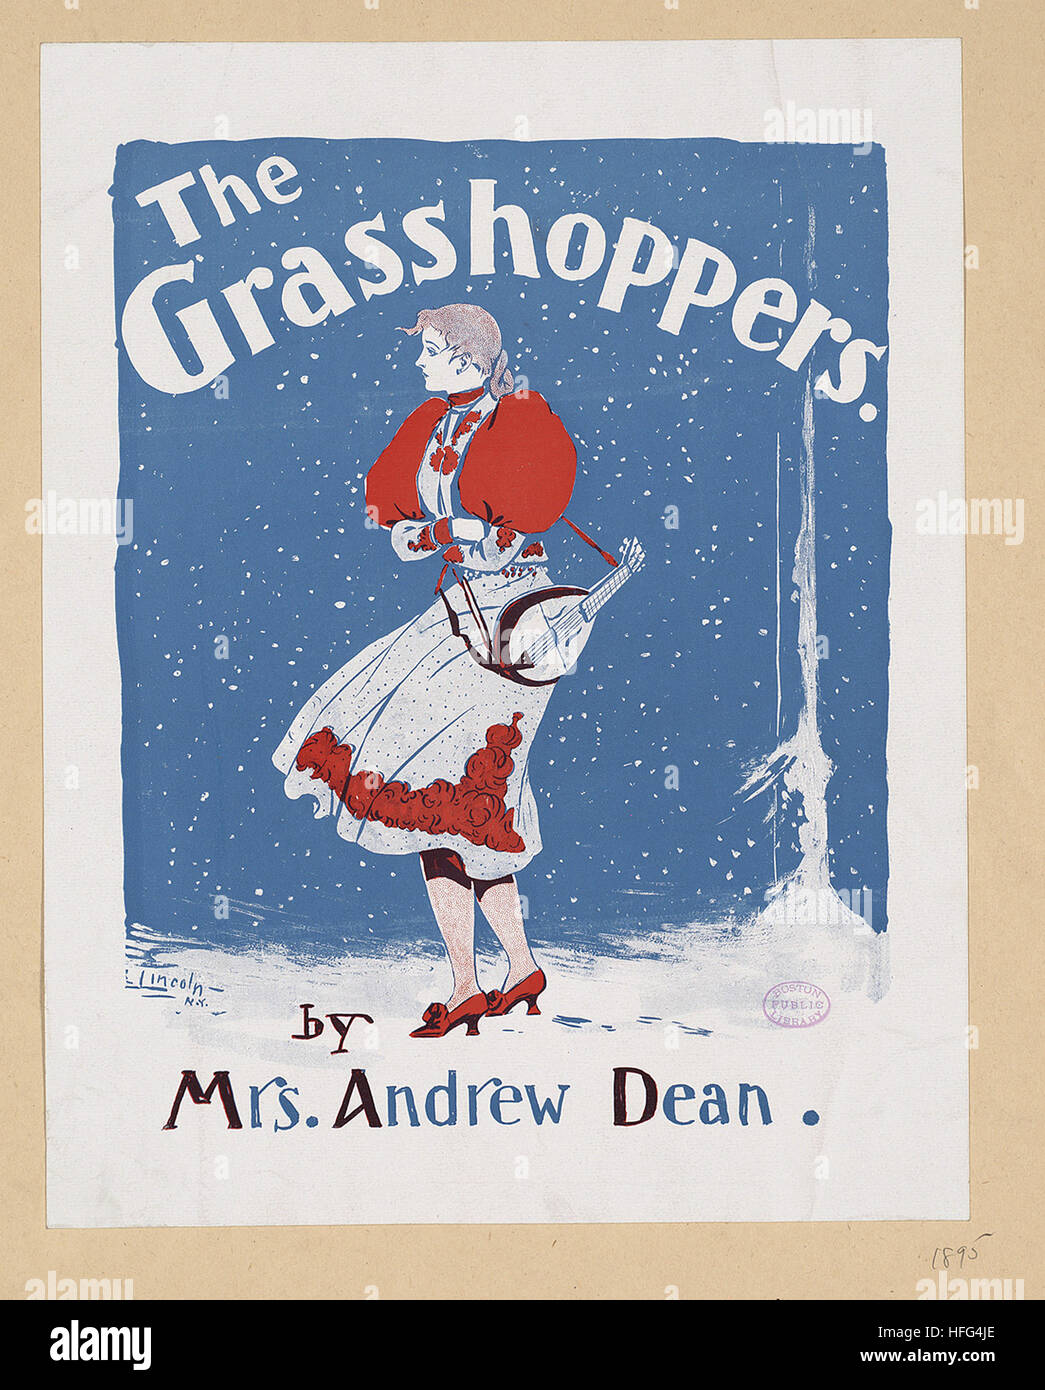 The grasshoppers by Mrs. Andrew Dean - Stock Image